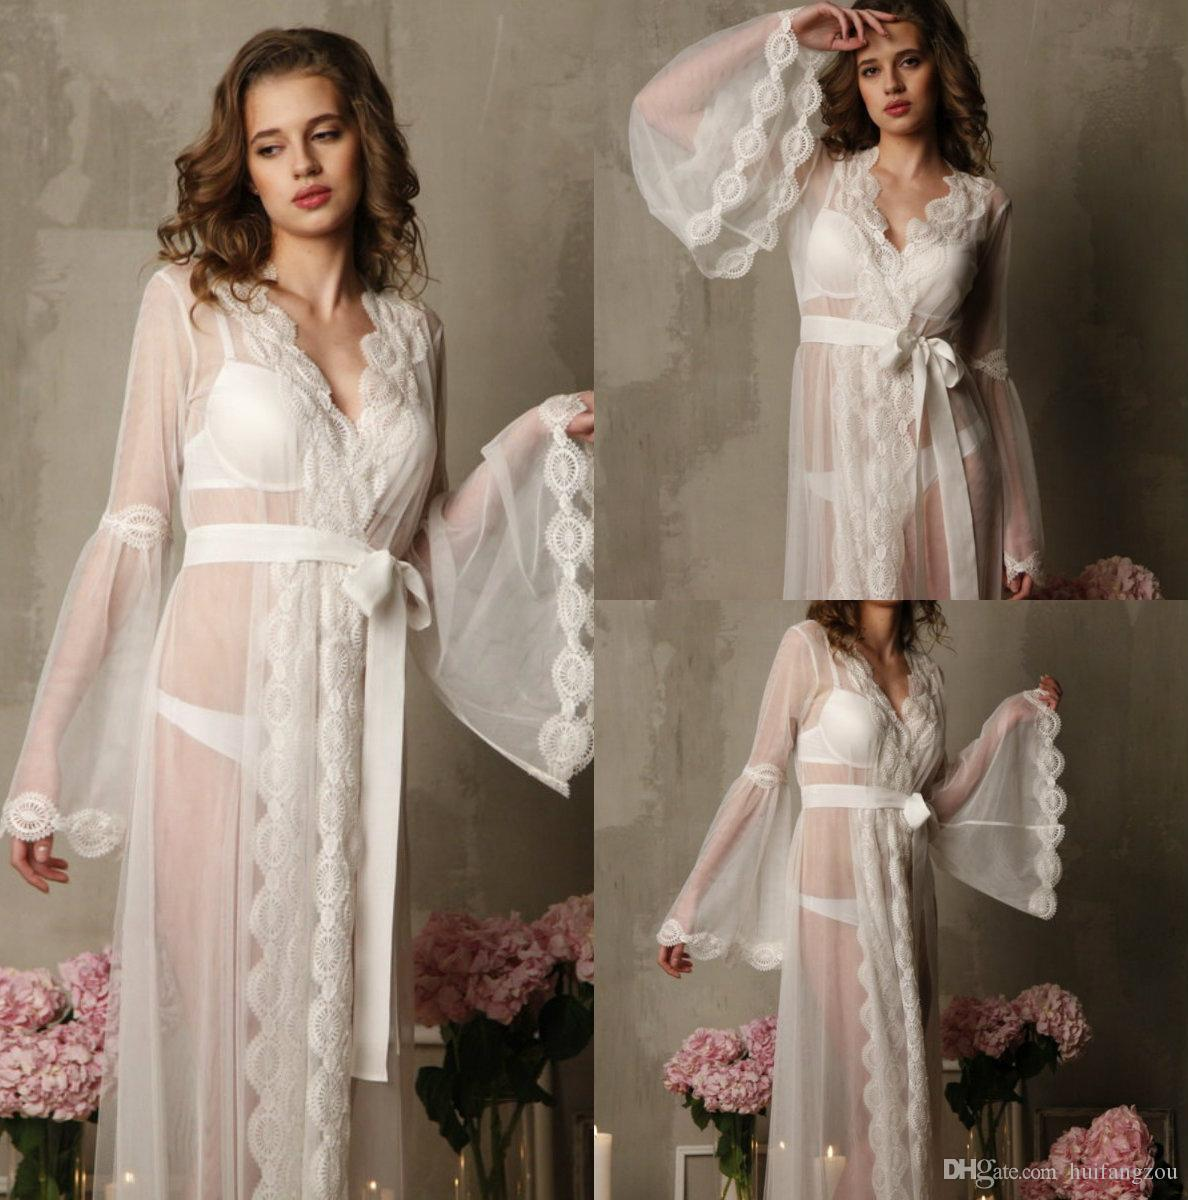 1f2b4834ec1 2019 Romantic Wedding Sleep Dresses With Long Sleeves Illusion Tulle  Delicate Lace Applique Belt Floor Length Bridal Nightgowns Custom Made From  Huifangzou